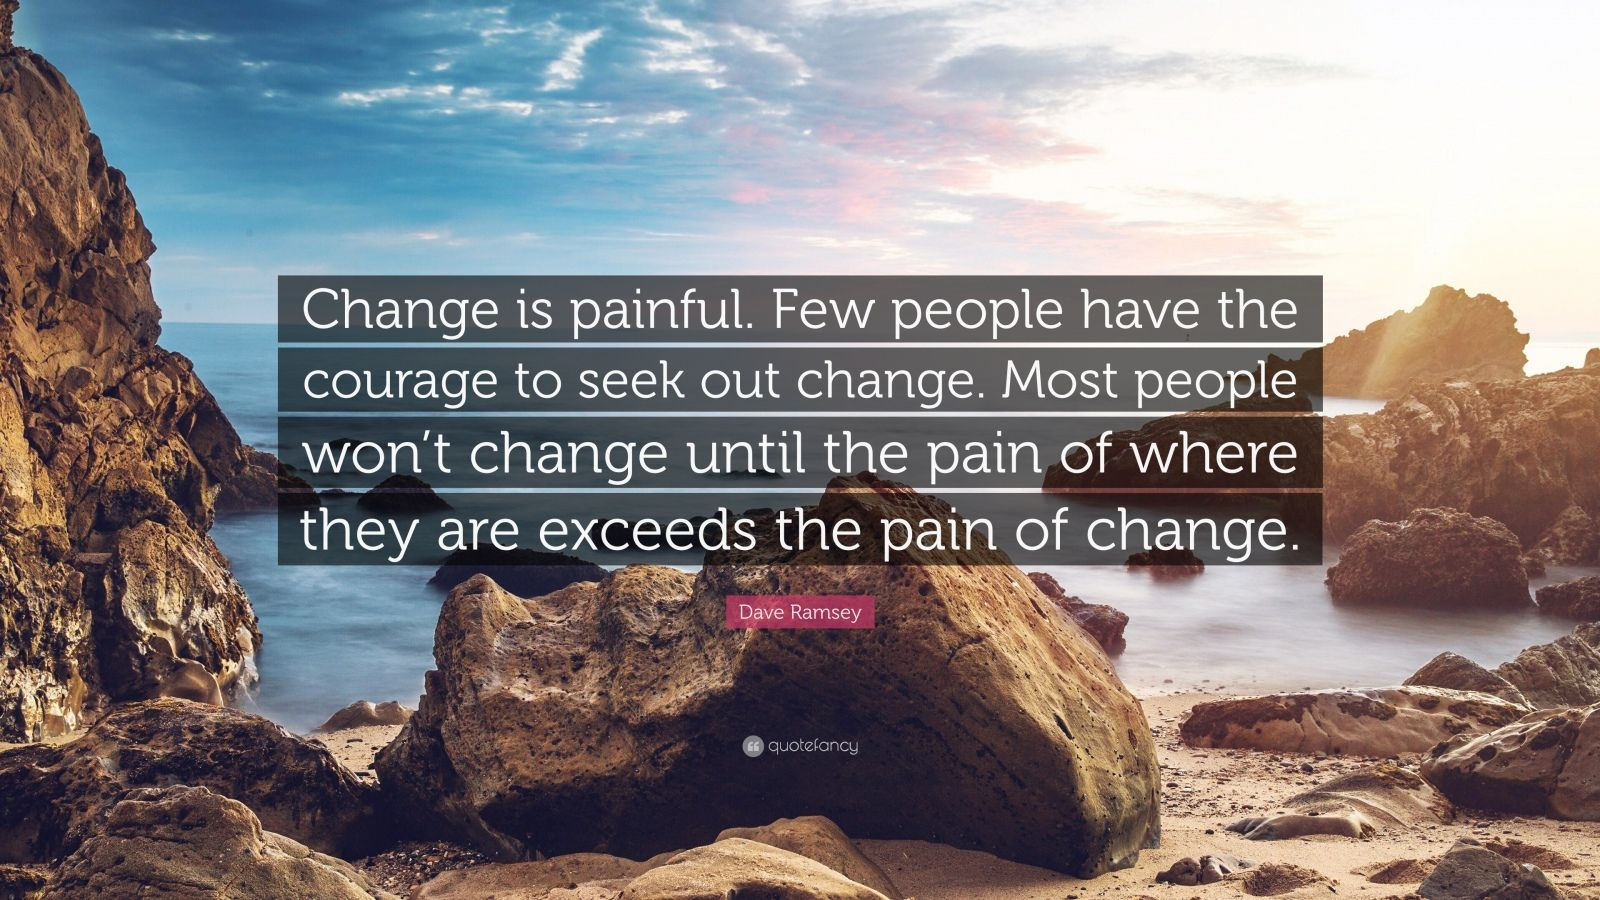 "Dave Ramsey Quote: ""Change is painful. Few people have the courage to seek out change. Most people won't change until the pain of where they are exceeds the pain of change."""